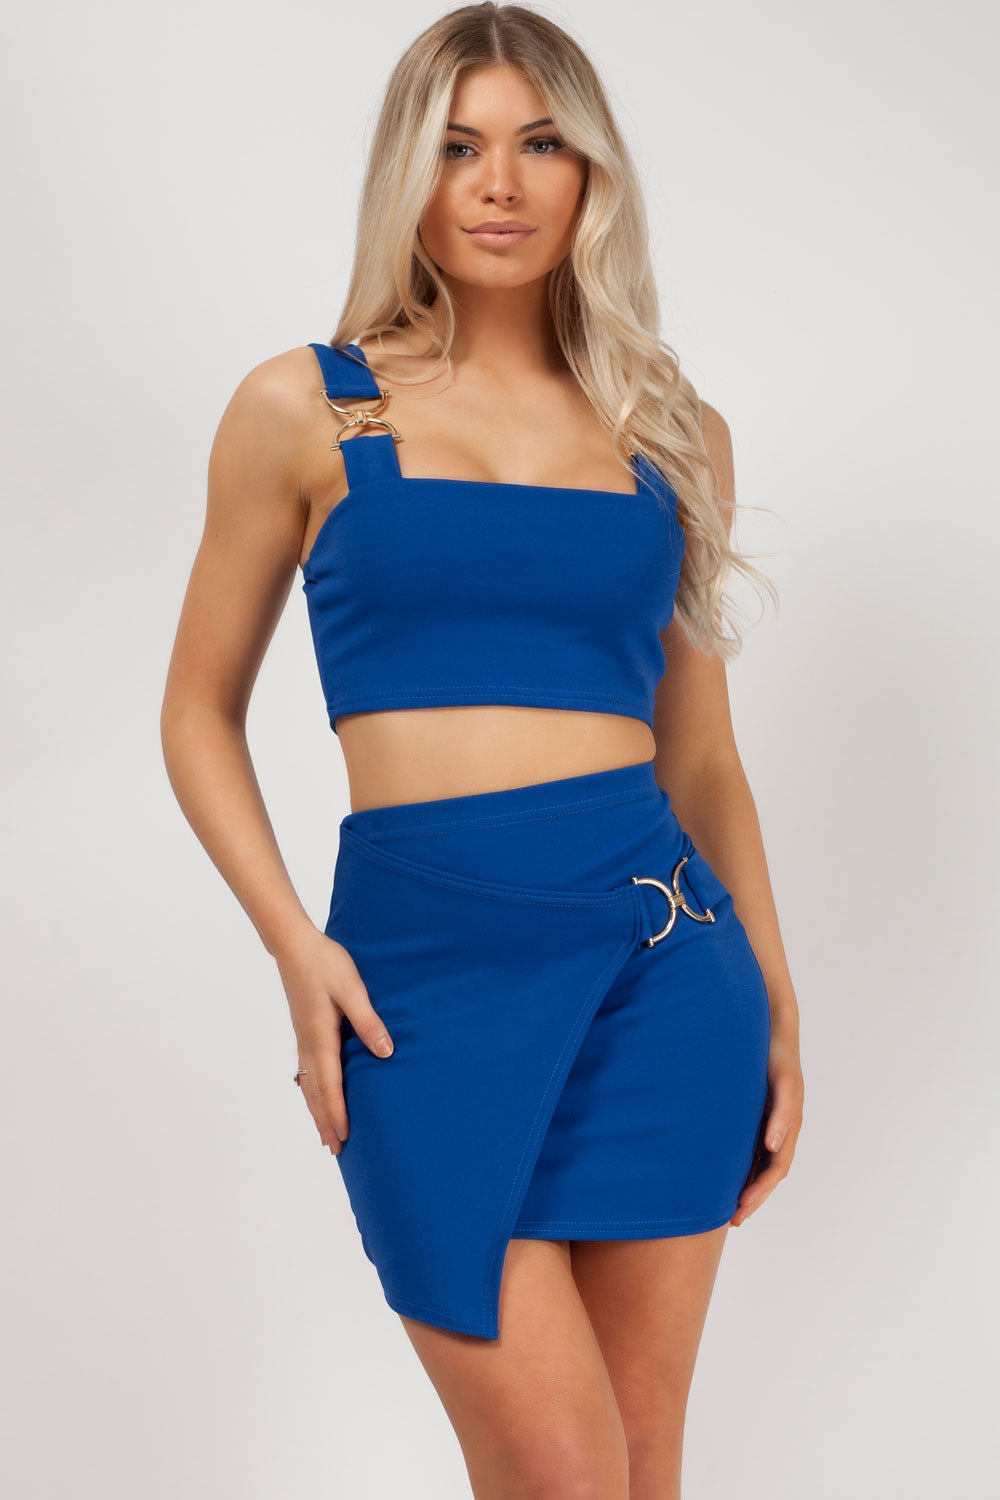 royal blue co ord set